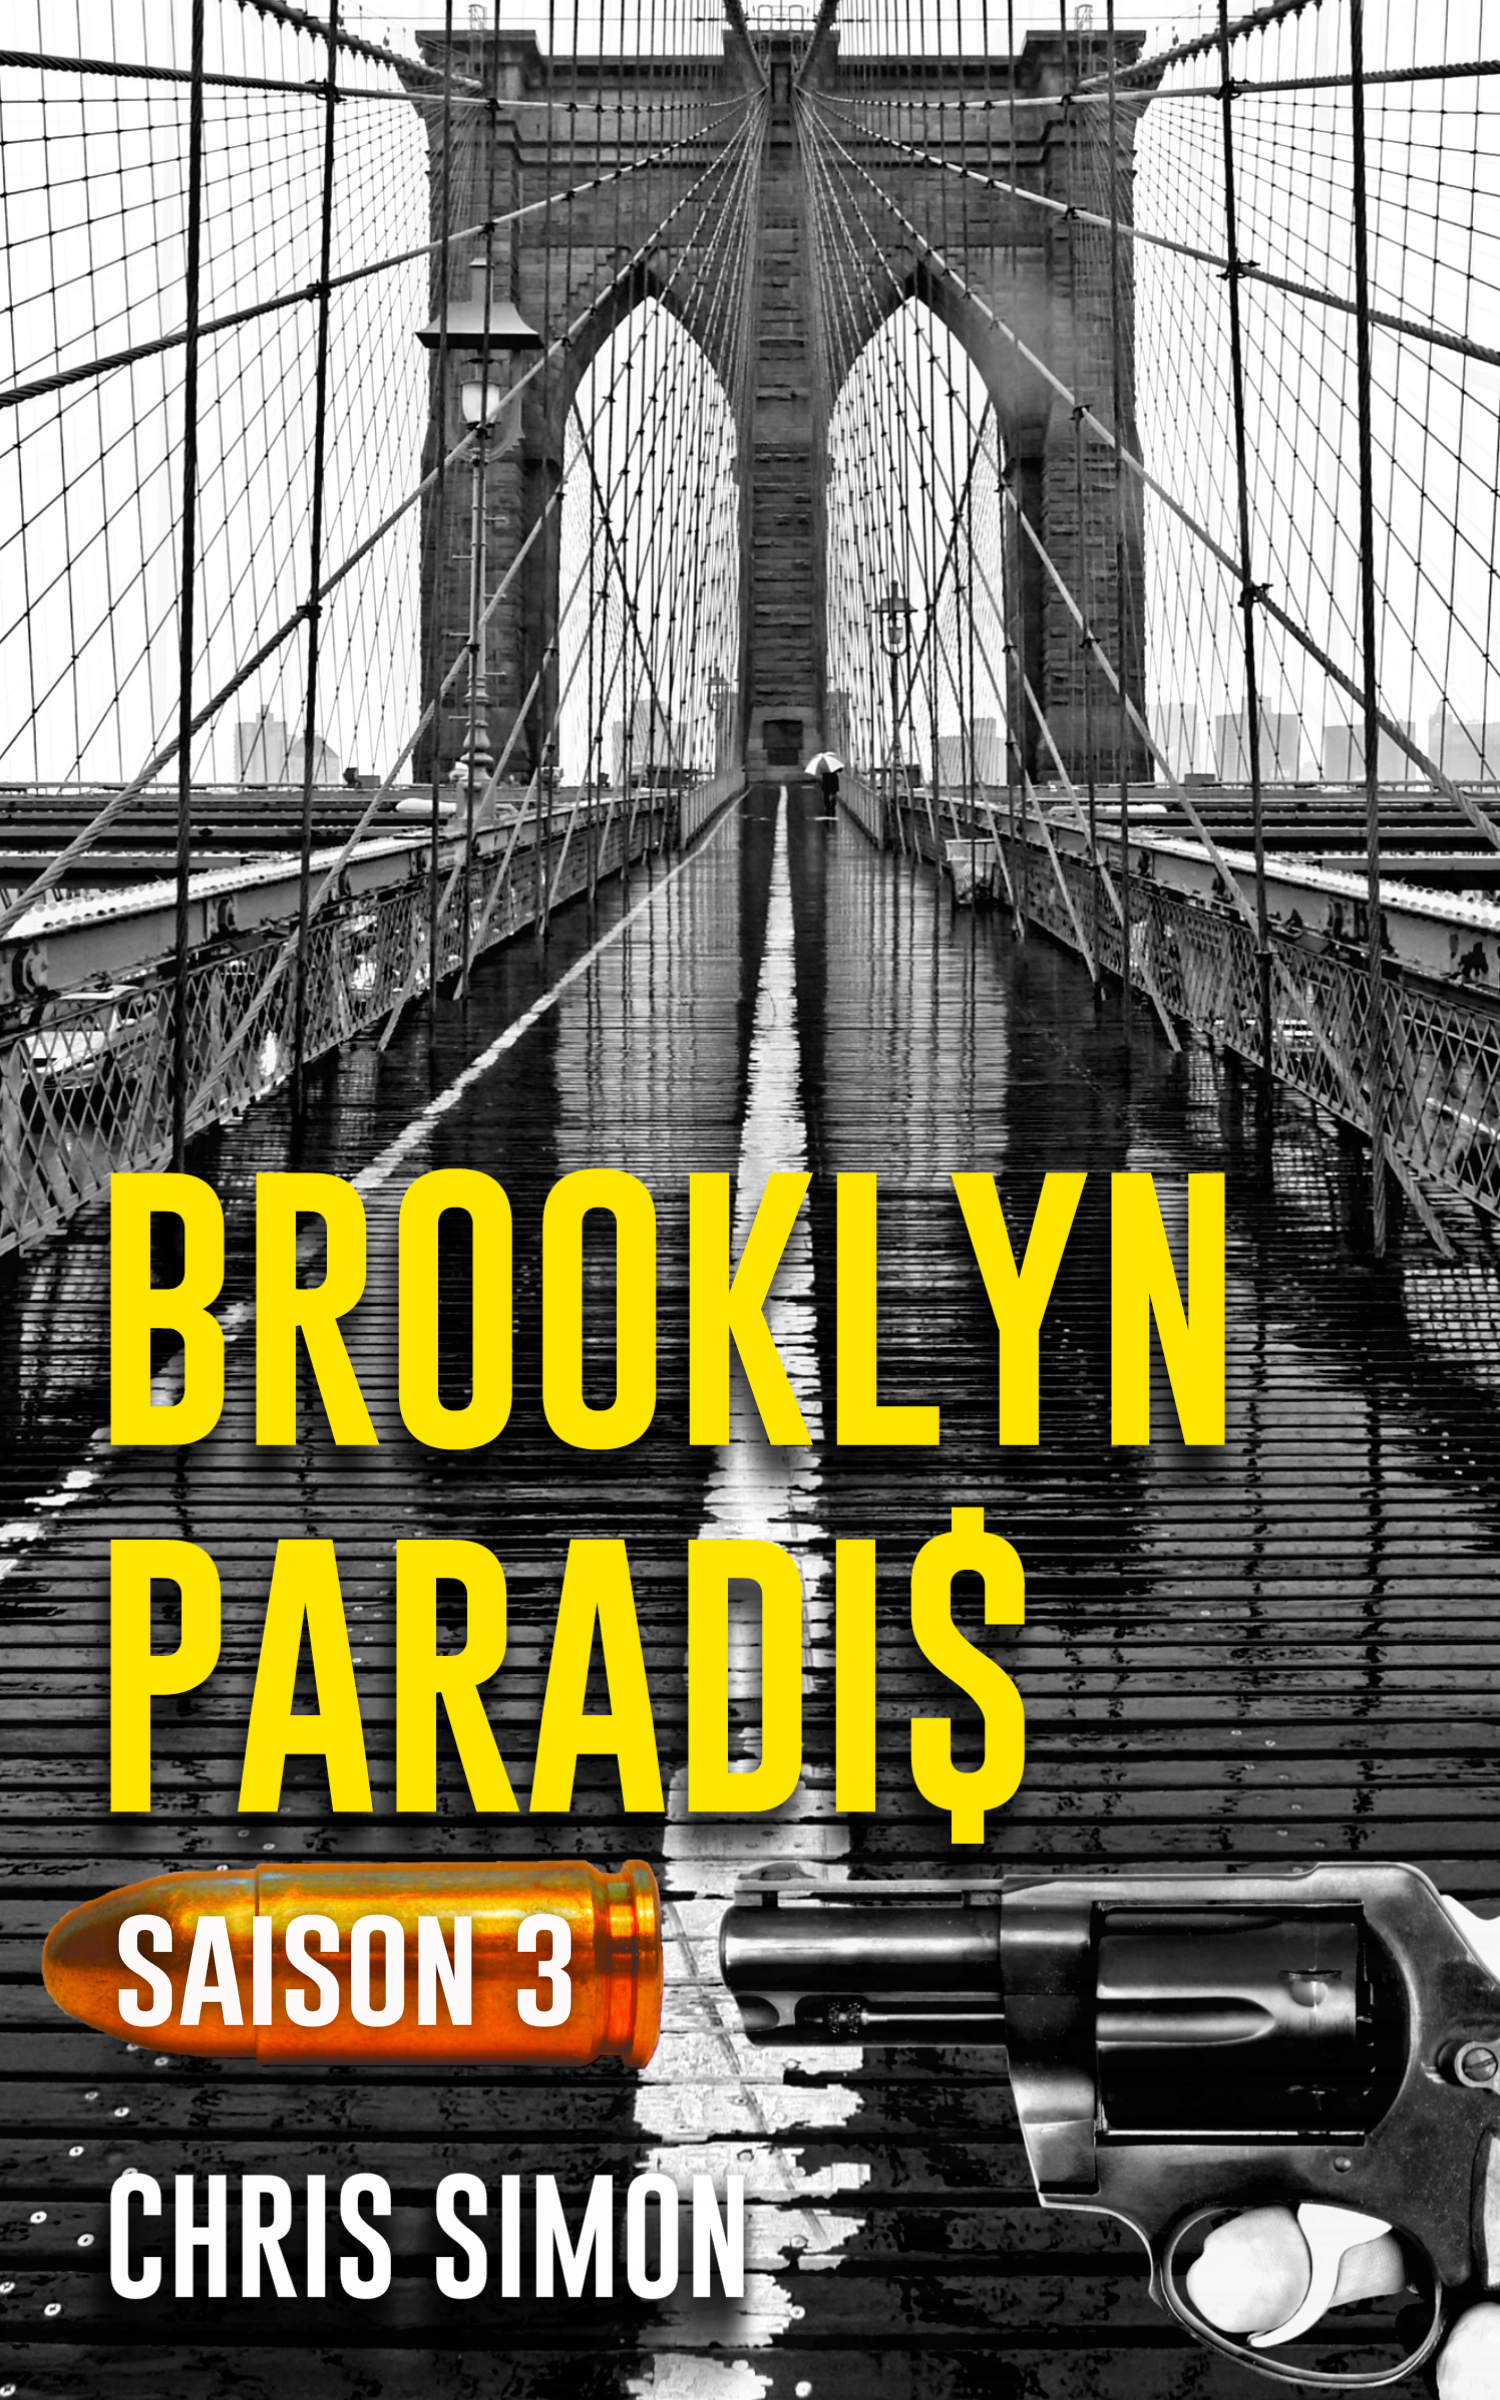 Brooklyn Paradis Saison 3